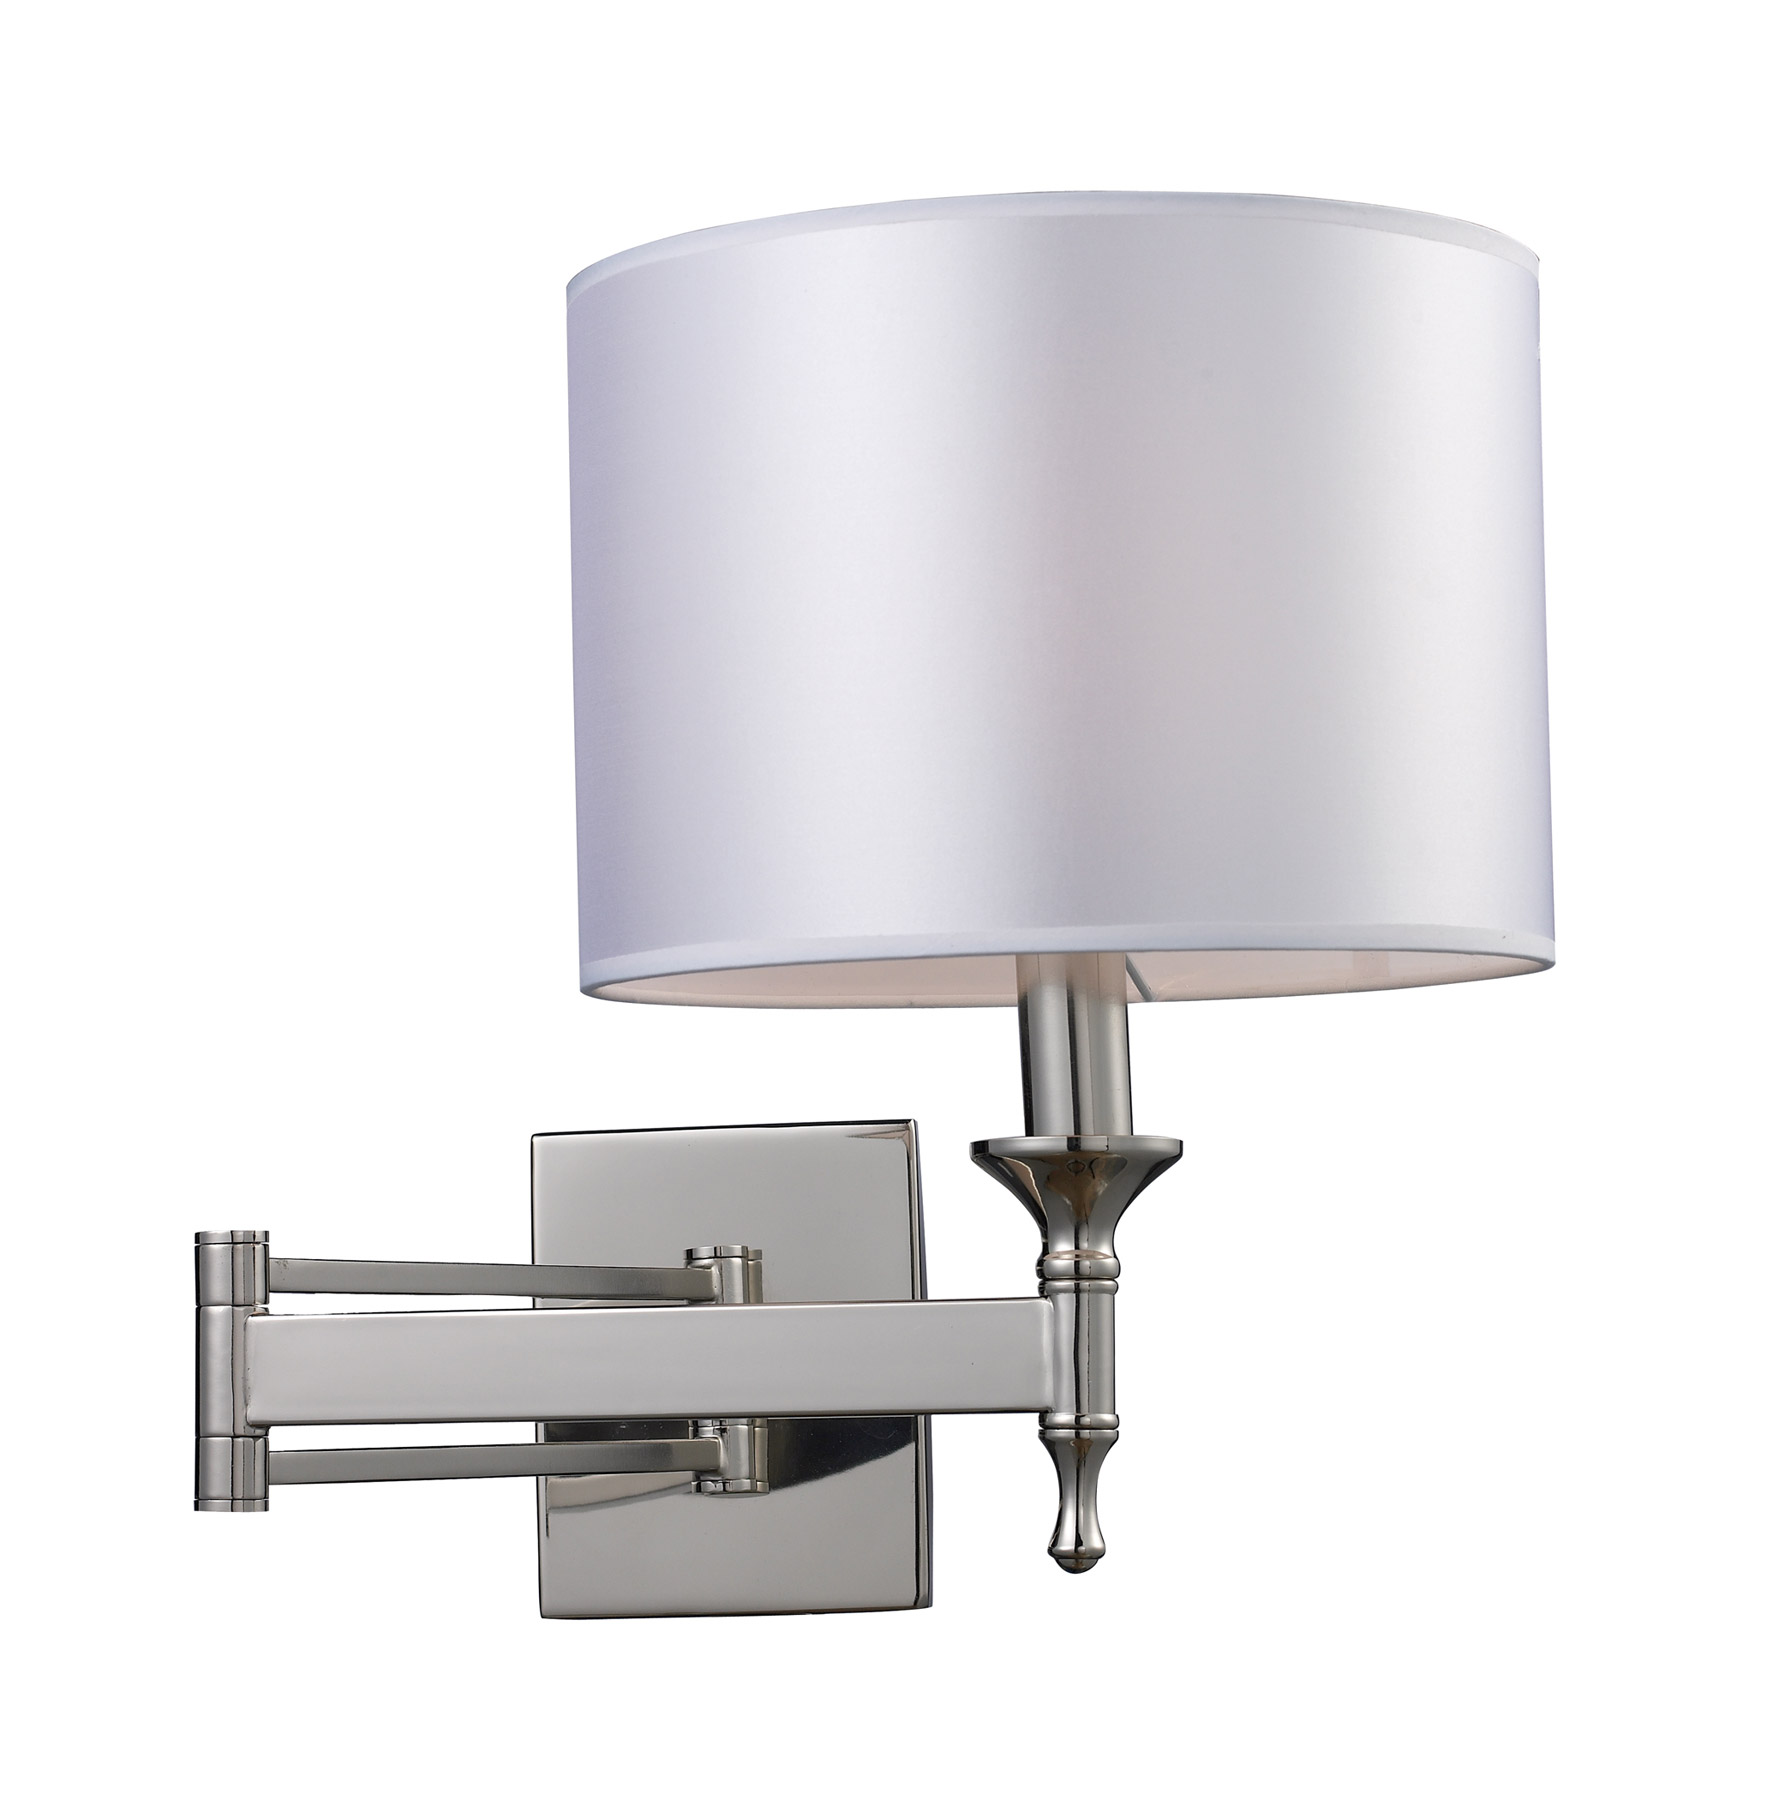 Wall Sconce Swing Arm Light : Elk Lighting 10160/1 Pembroke Swing Arm Wall Sconce